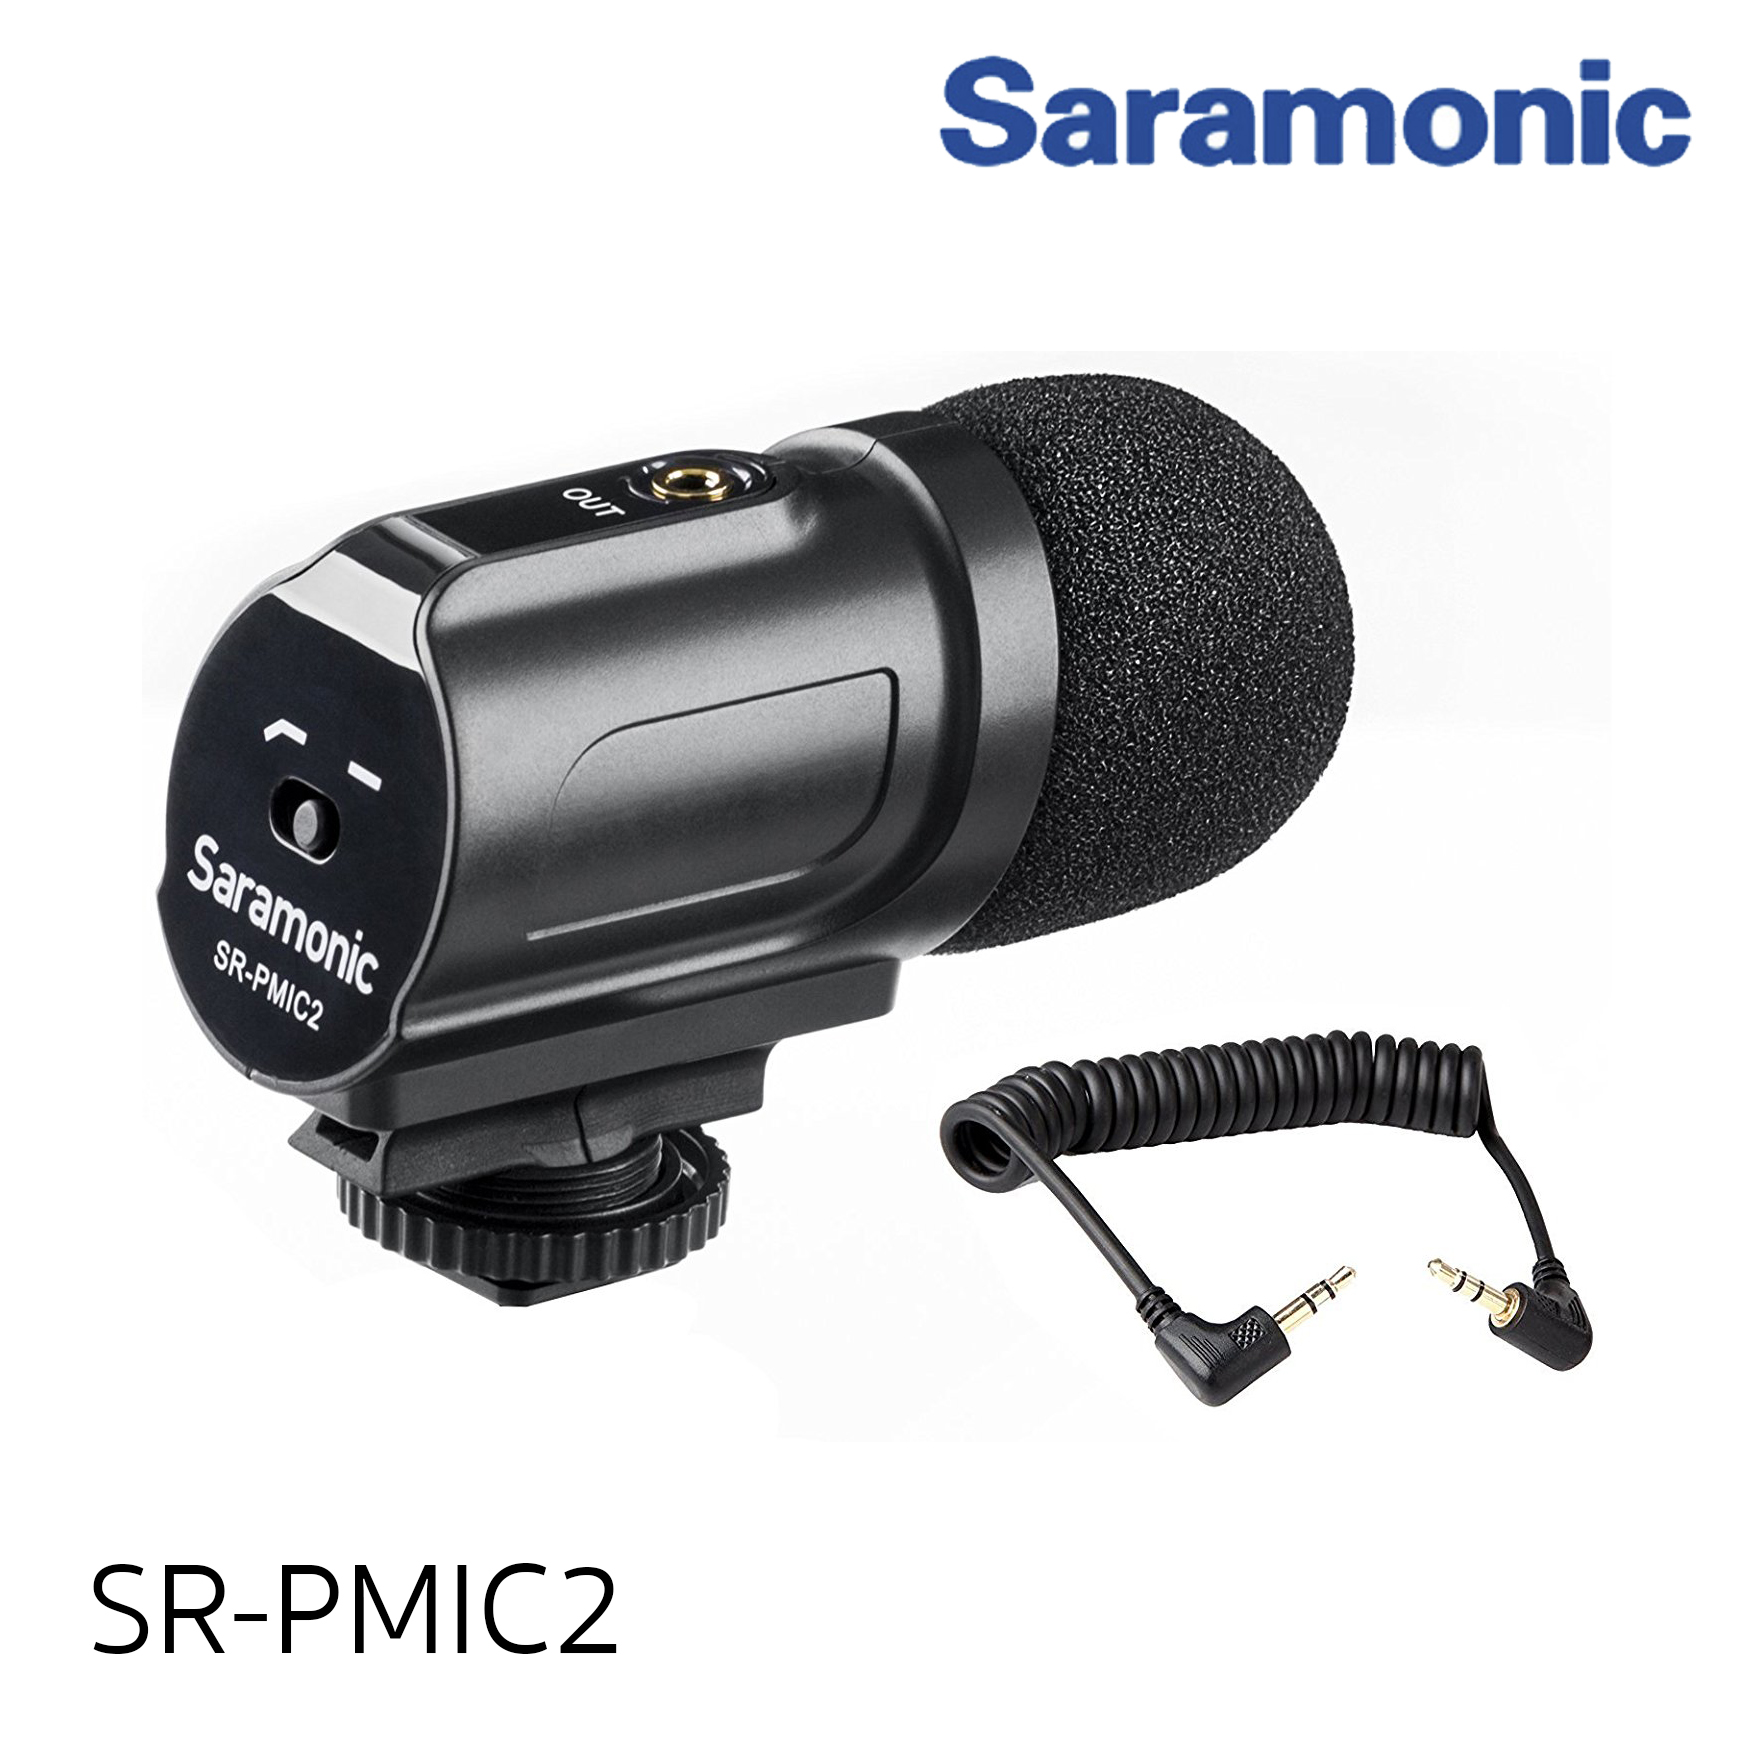 Saramonic SR-PMIC2 Mini Stereo Condenser Microphone with Integrated Shockmount, Low-Cut Filter & Battery-Free Operation for DSLR Cameras & Camcorders